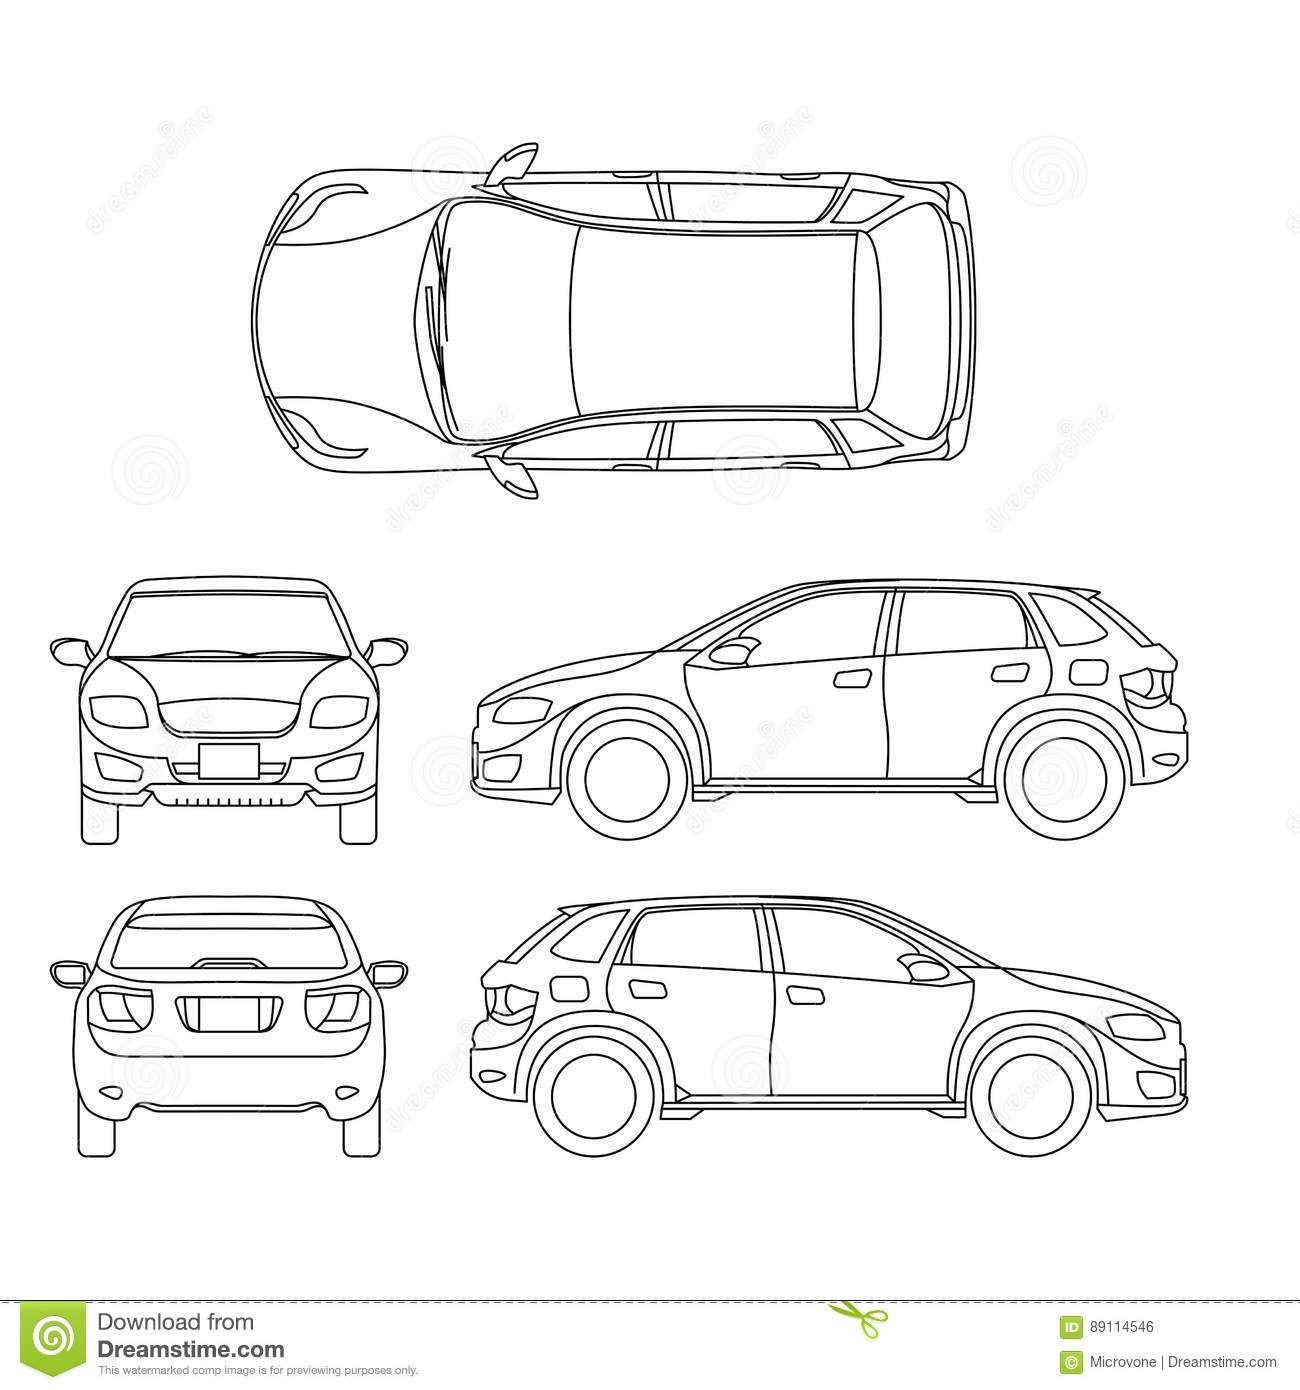 offroad cartoons  illustrations  u0026 vector stock images